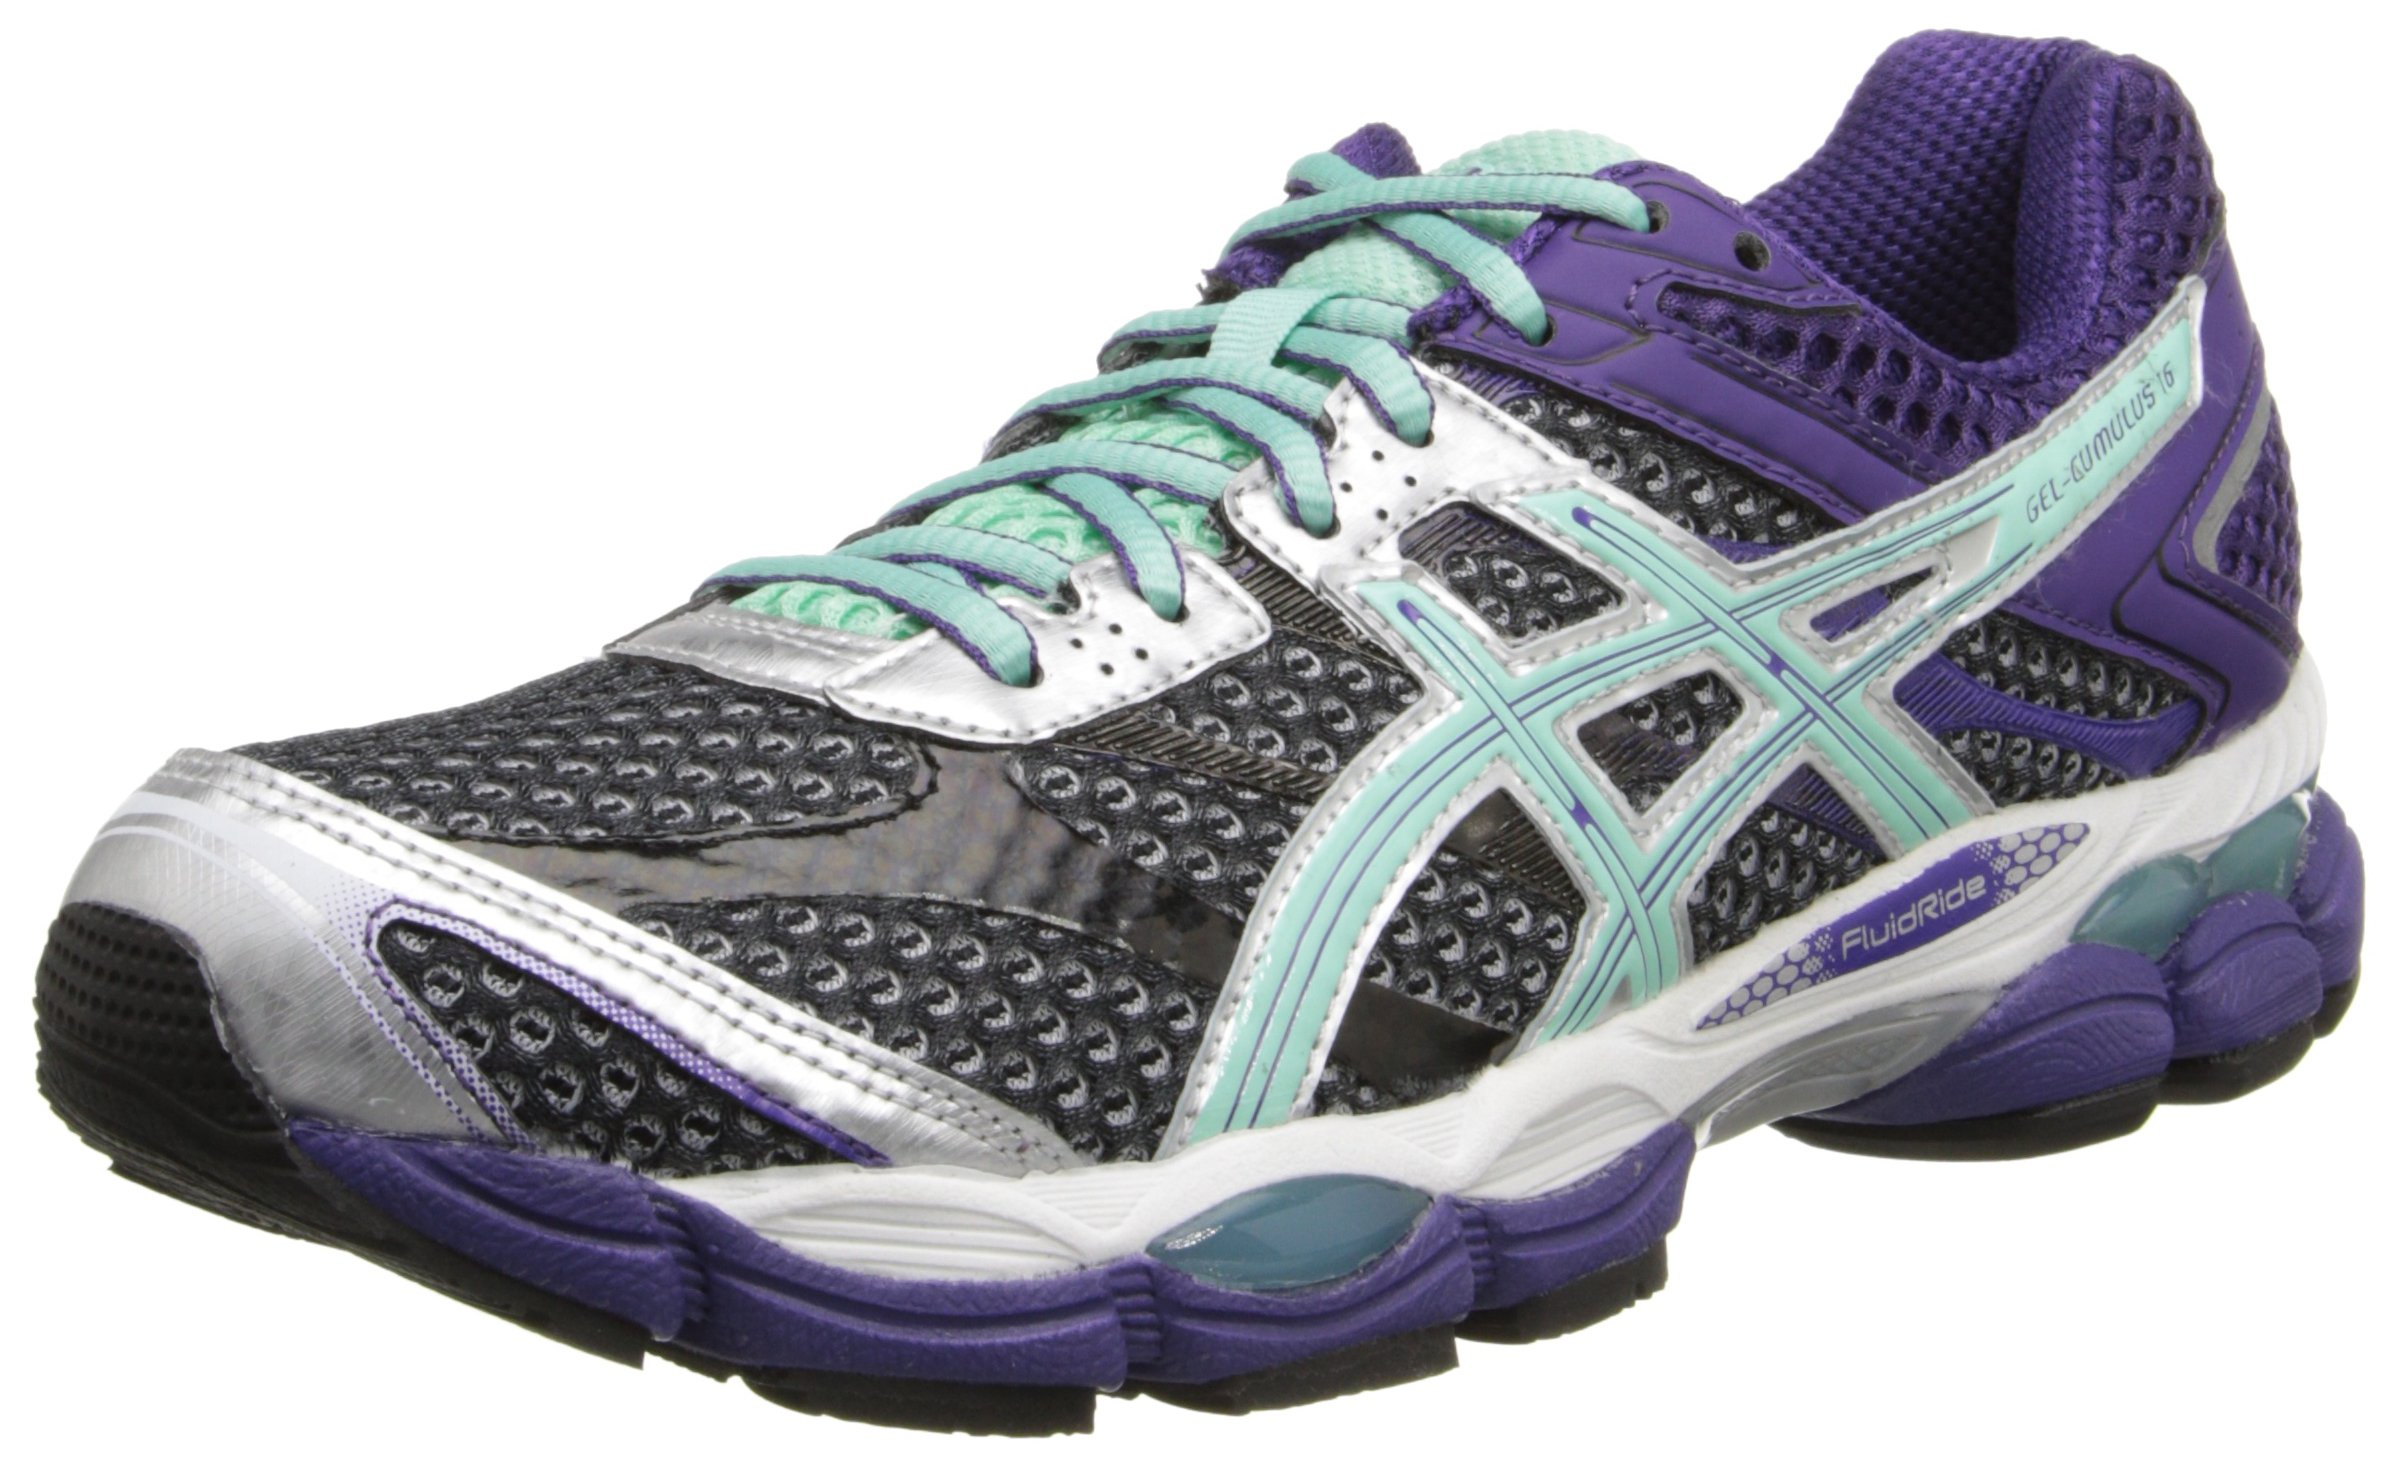 ASICS Women's Gel-Cumulus 16 Running Shoe,Onyx/Beach Glass/Purple,13 M US by ASICS